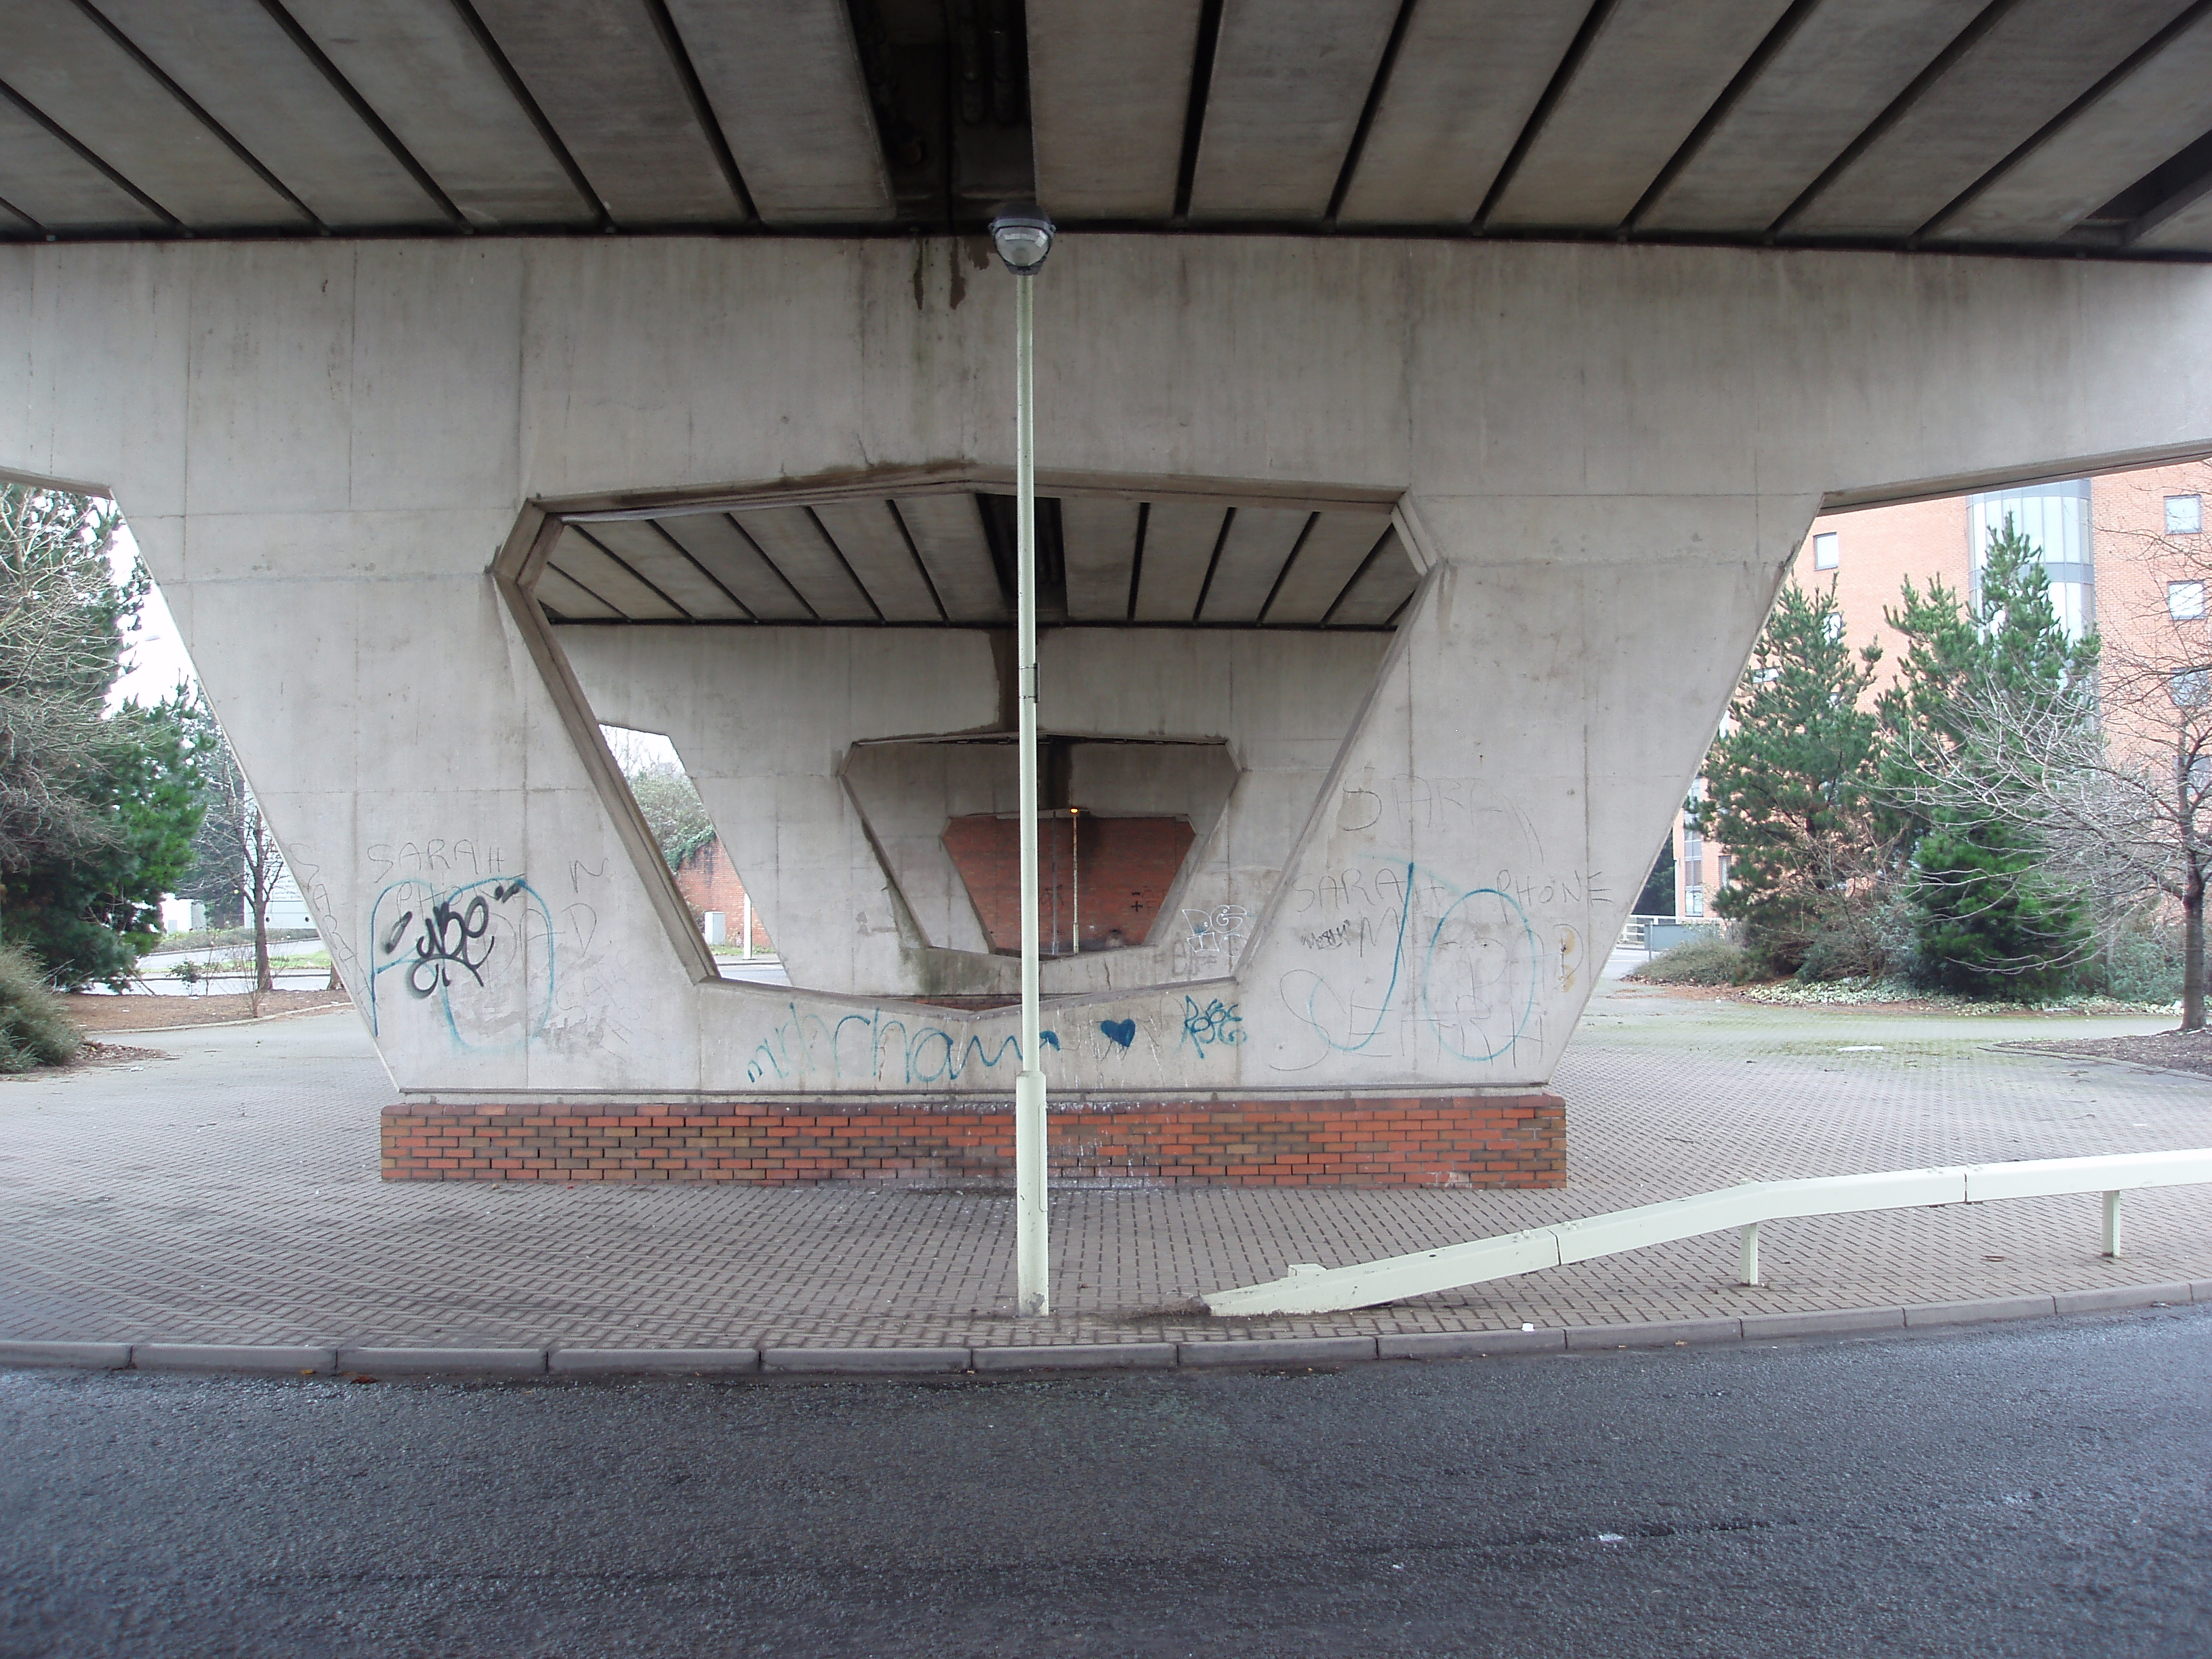 roundabout under the flyover